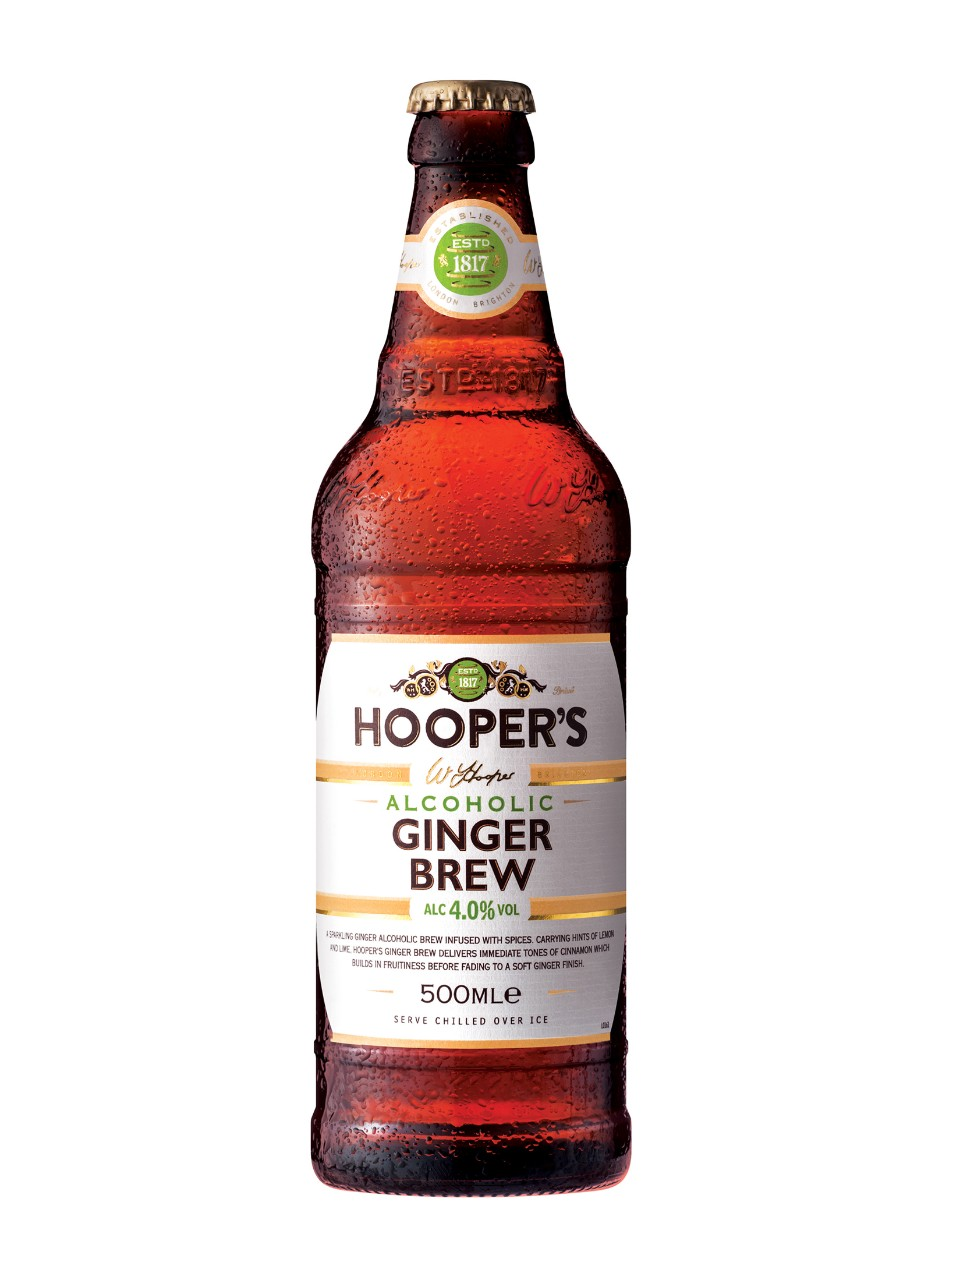 Hooper's Ginger Brew